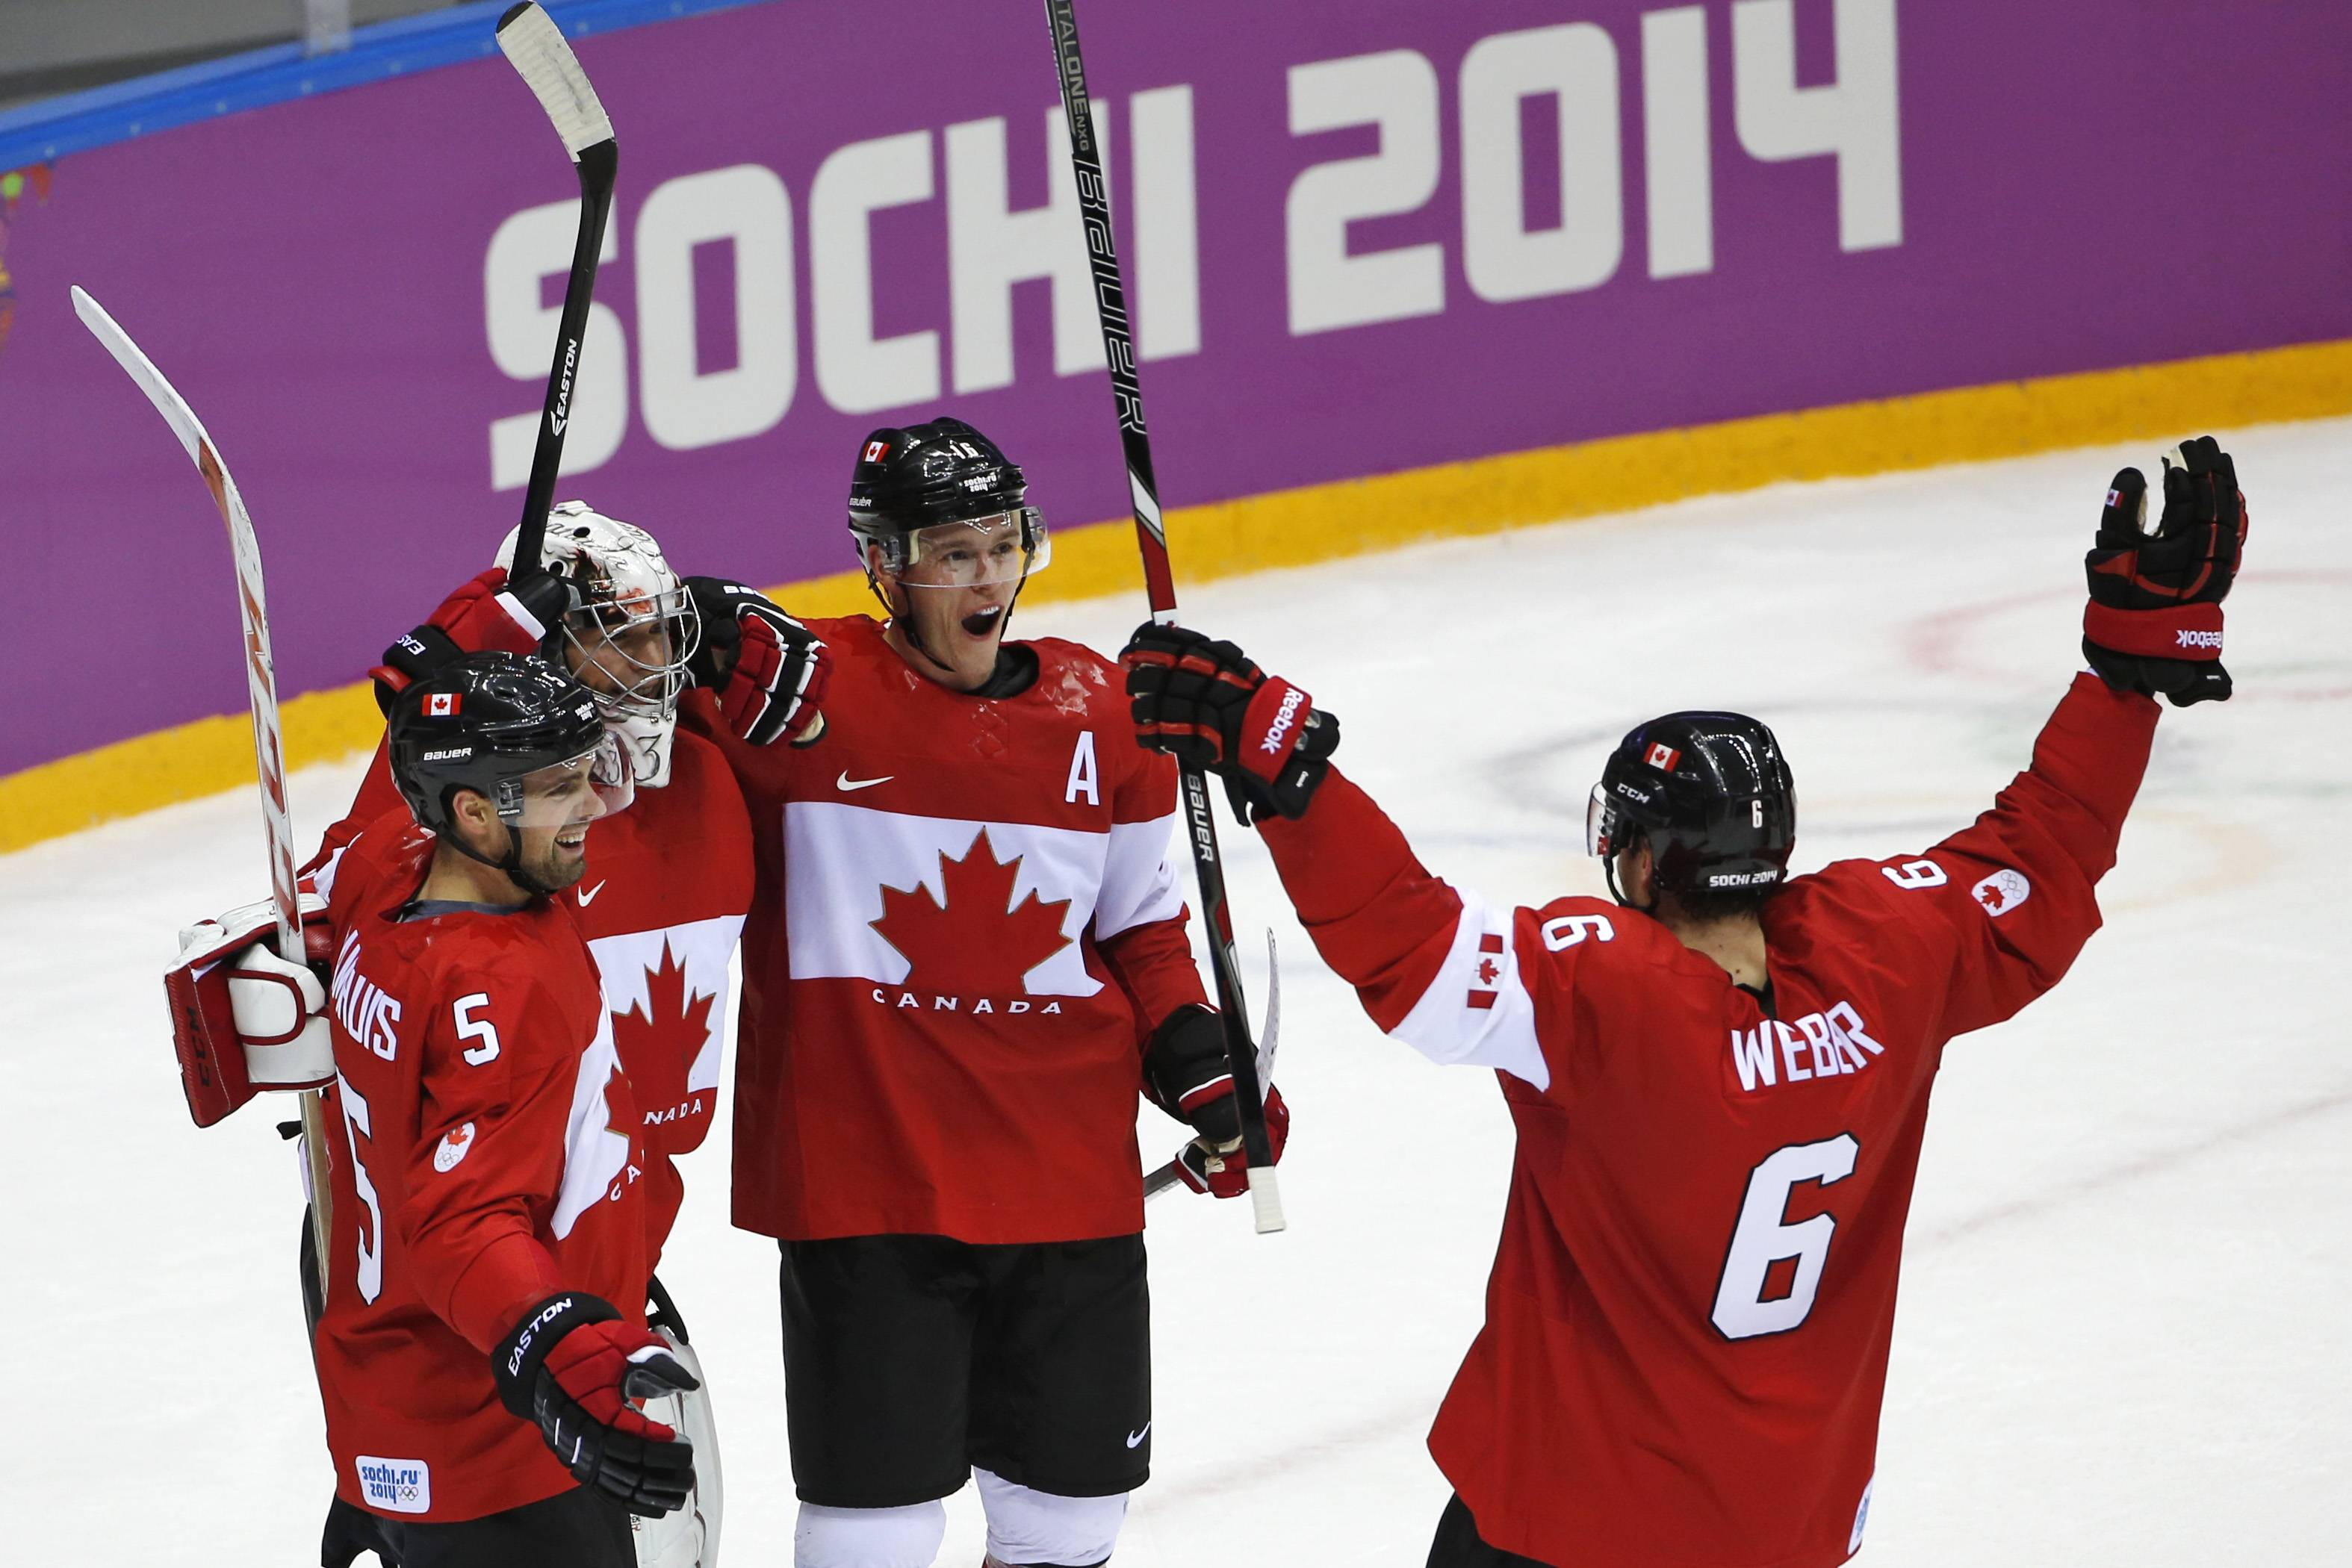 Dan Hamhuis of Canada (5), goalkeeper Carey Price of Canada (31), Jonathan Toews of Canada (16) and Shea Weber of Canada (6) celebrate their 3-0 win over Sweden in the men's gold medal ice hockey game at the 2014 Winter Olympics, Sunday, Feb. 23, 2014, in Sochi, Russia.